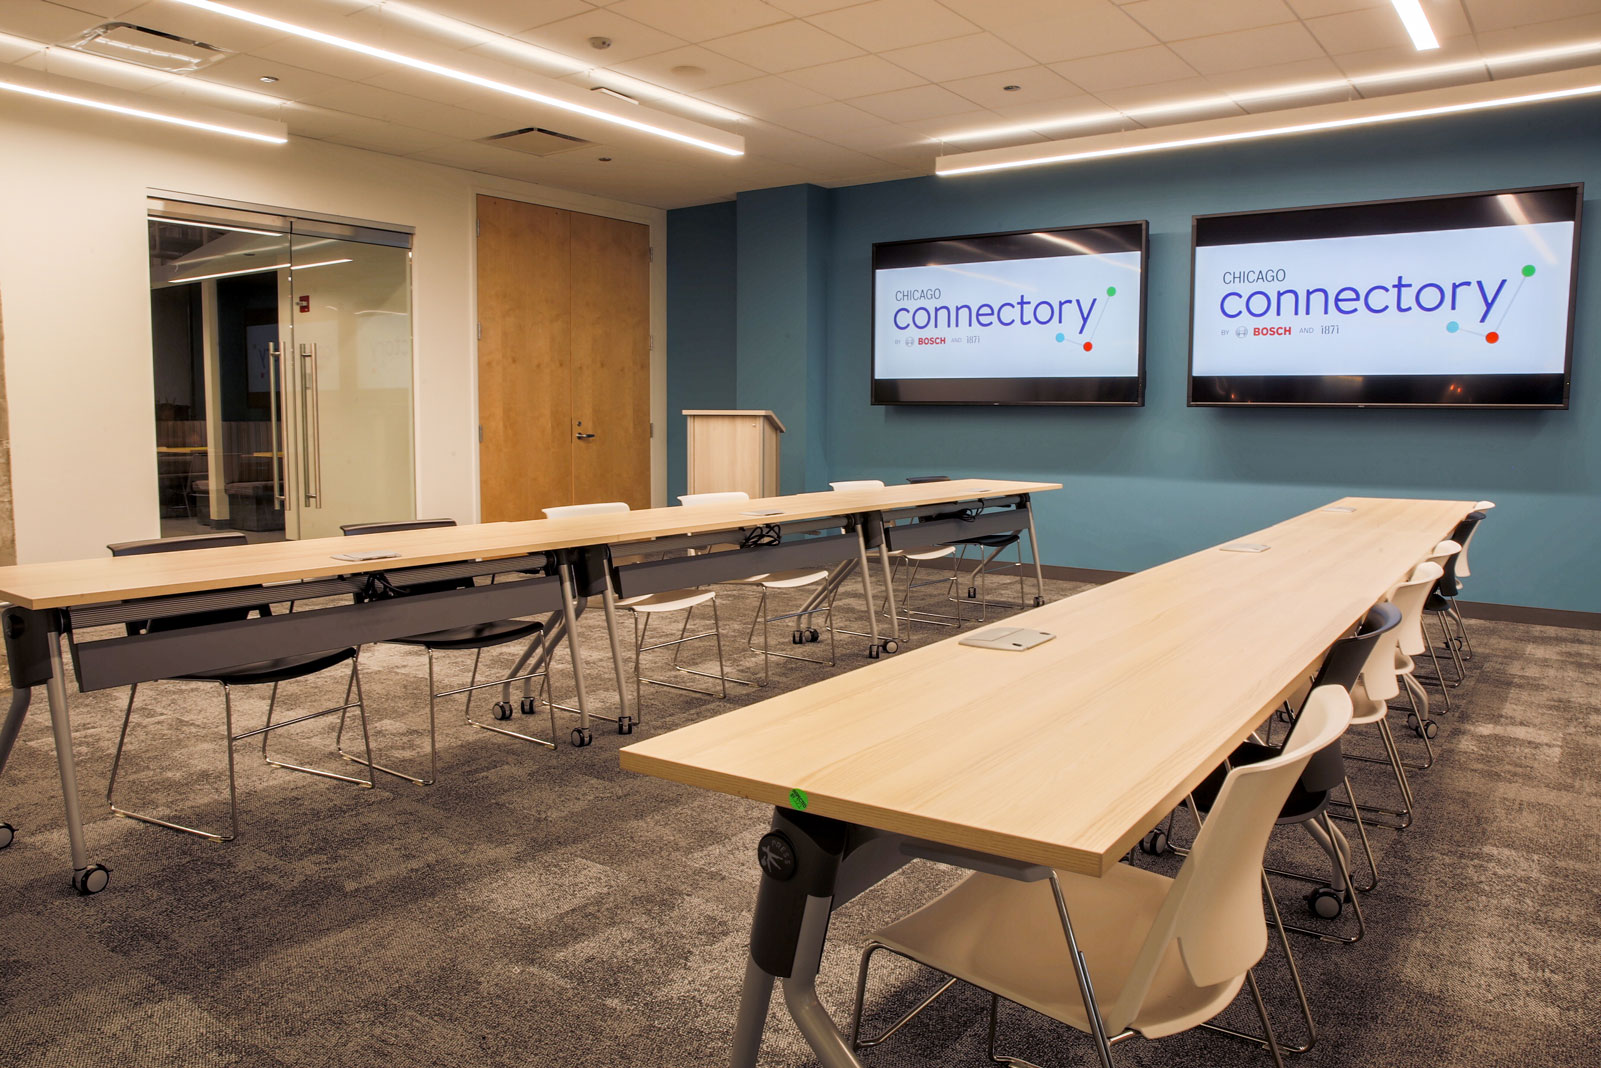 Large Conference Room to Host Collaborative Meetings | Chicago Connectory